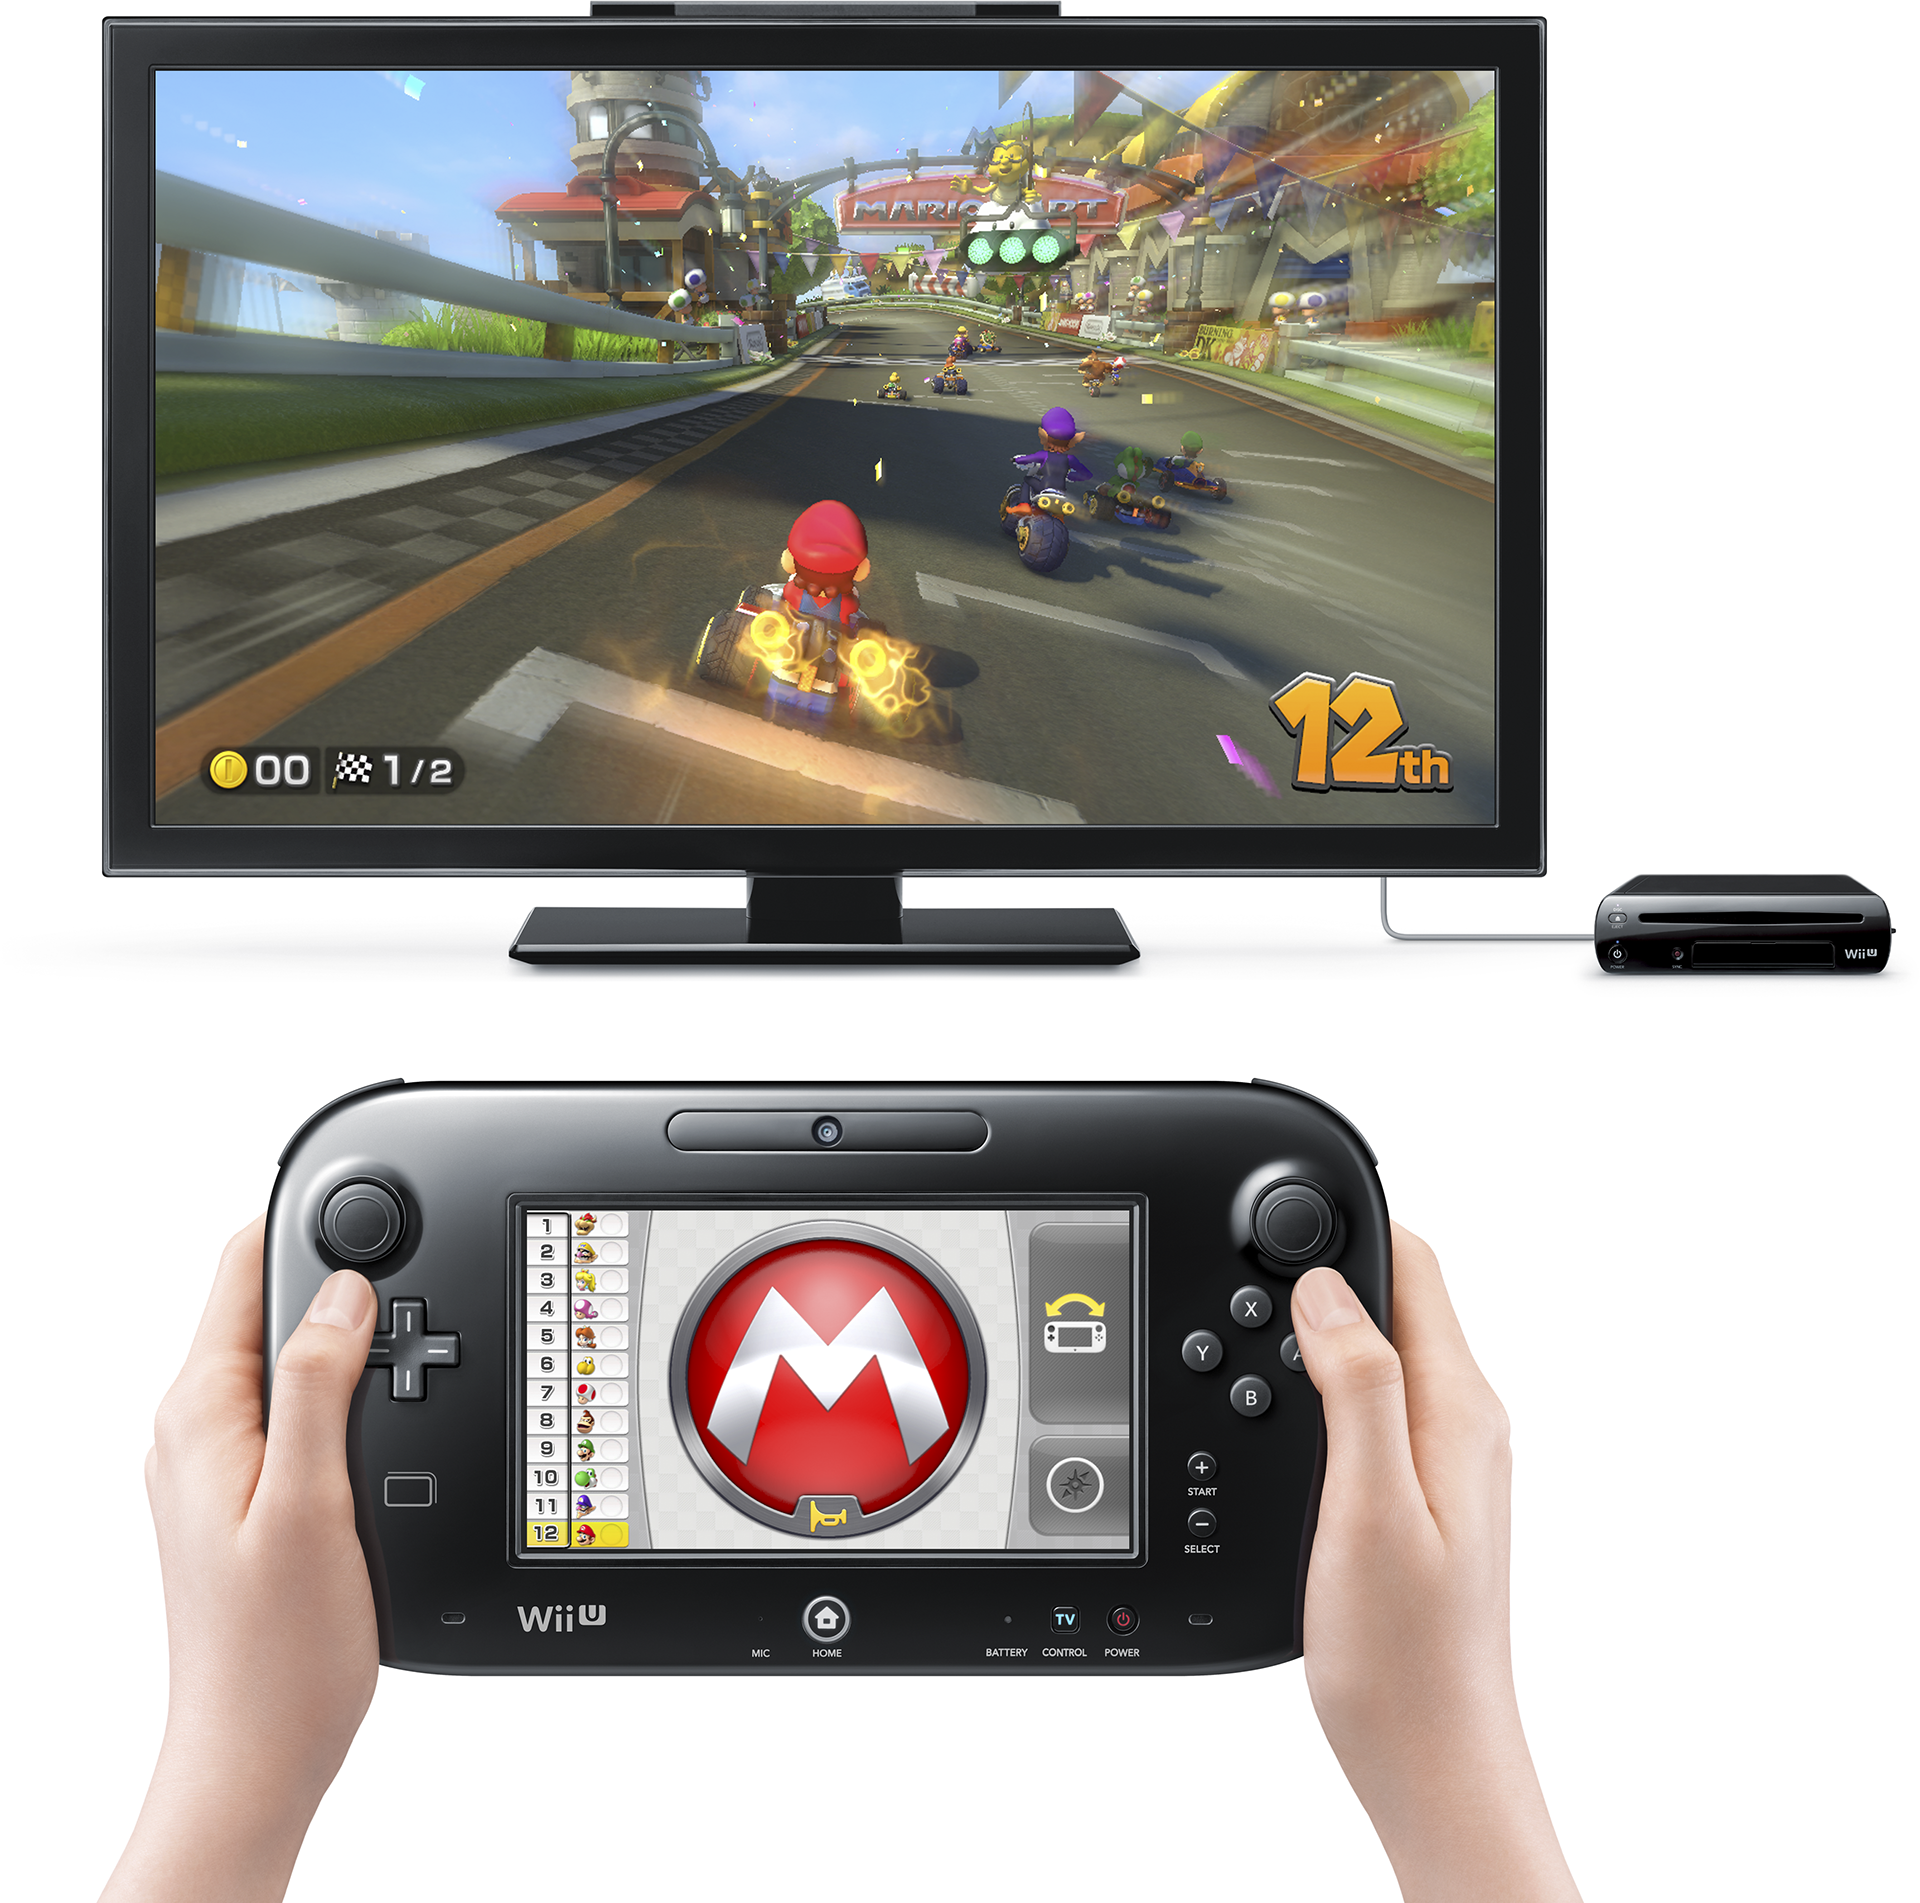 Mario Kart 8 S Use Of The Gamepad Is Disappointing Editorial